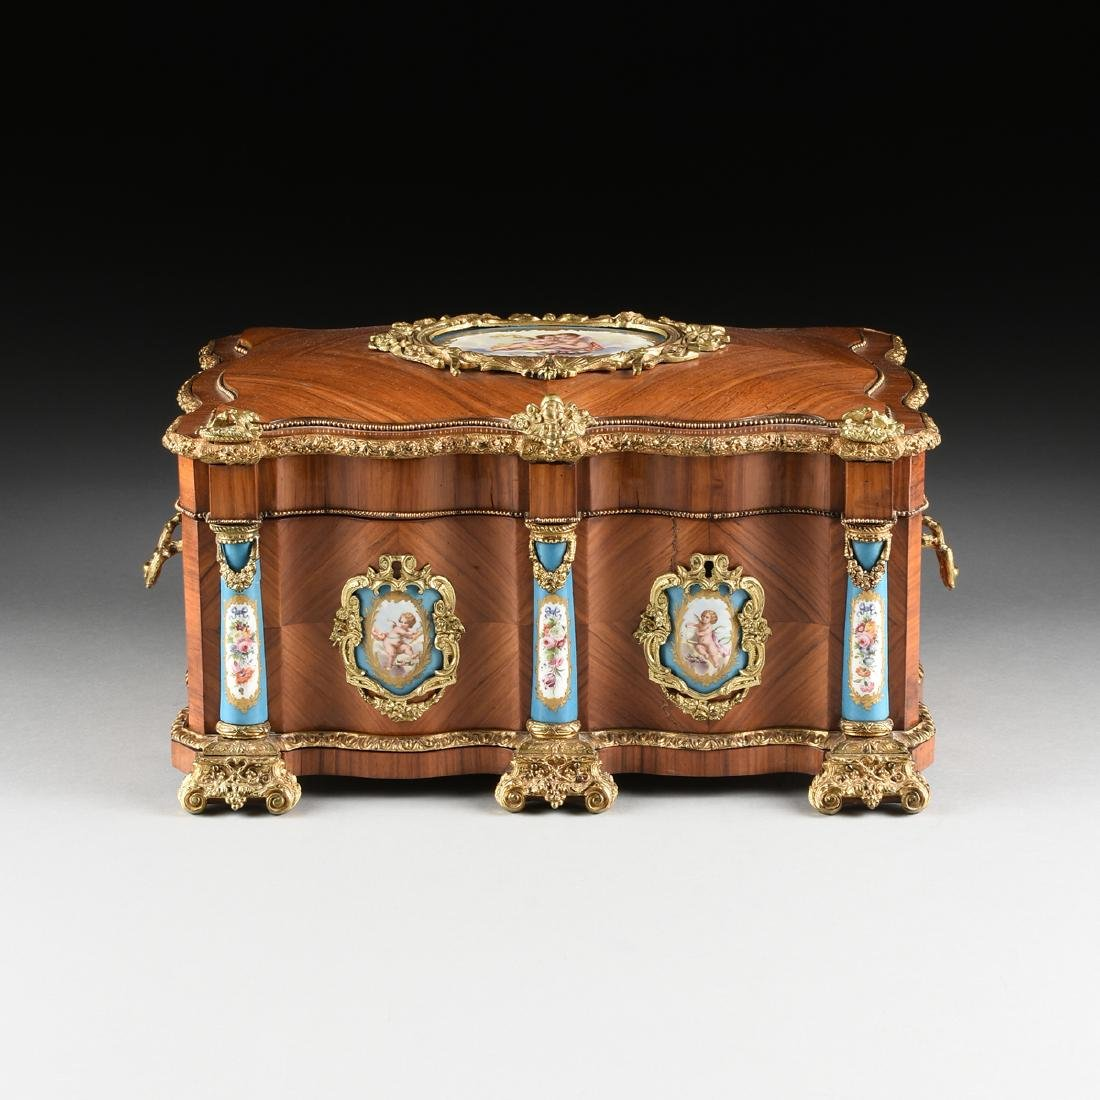 A NAPOLEON III GILT BRONZE AND PORCELAIN MOUNTED